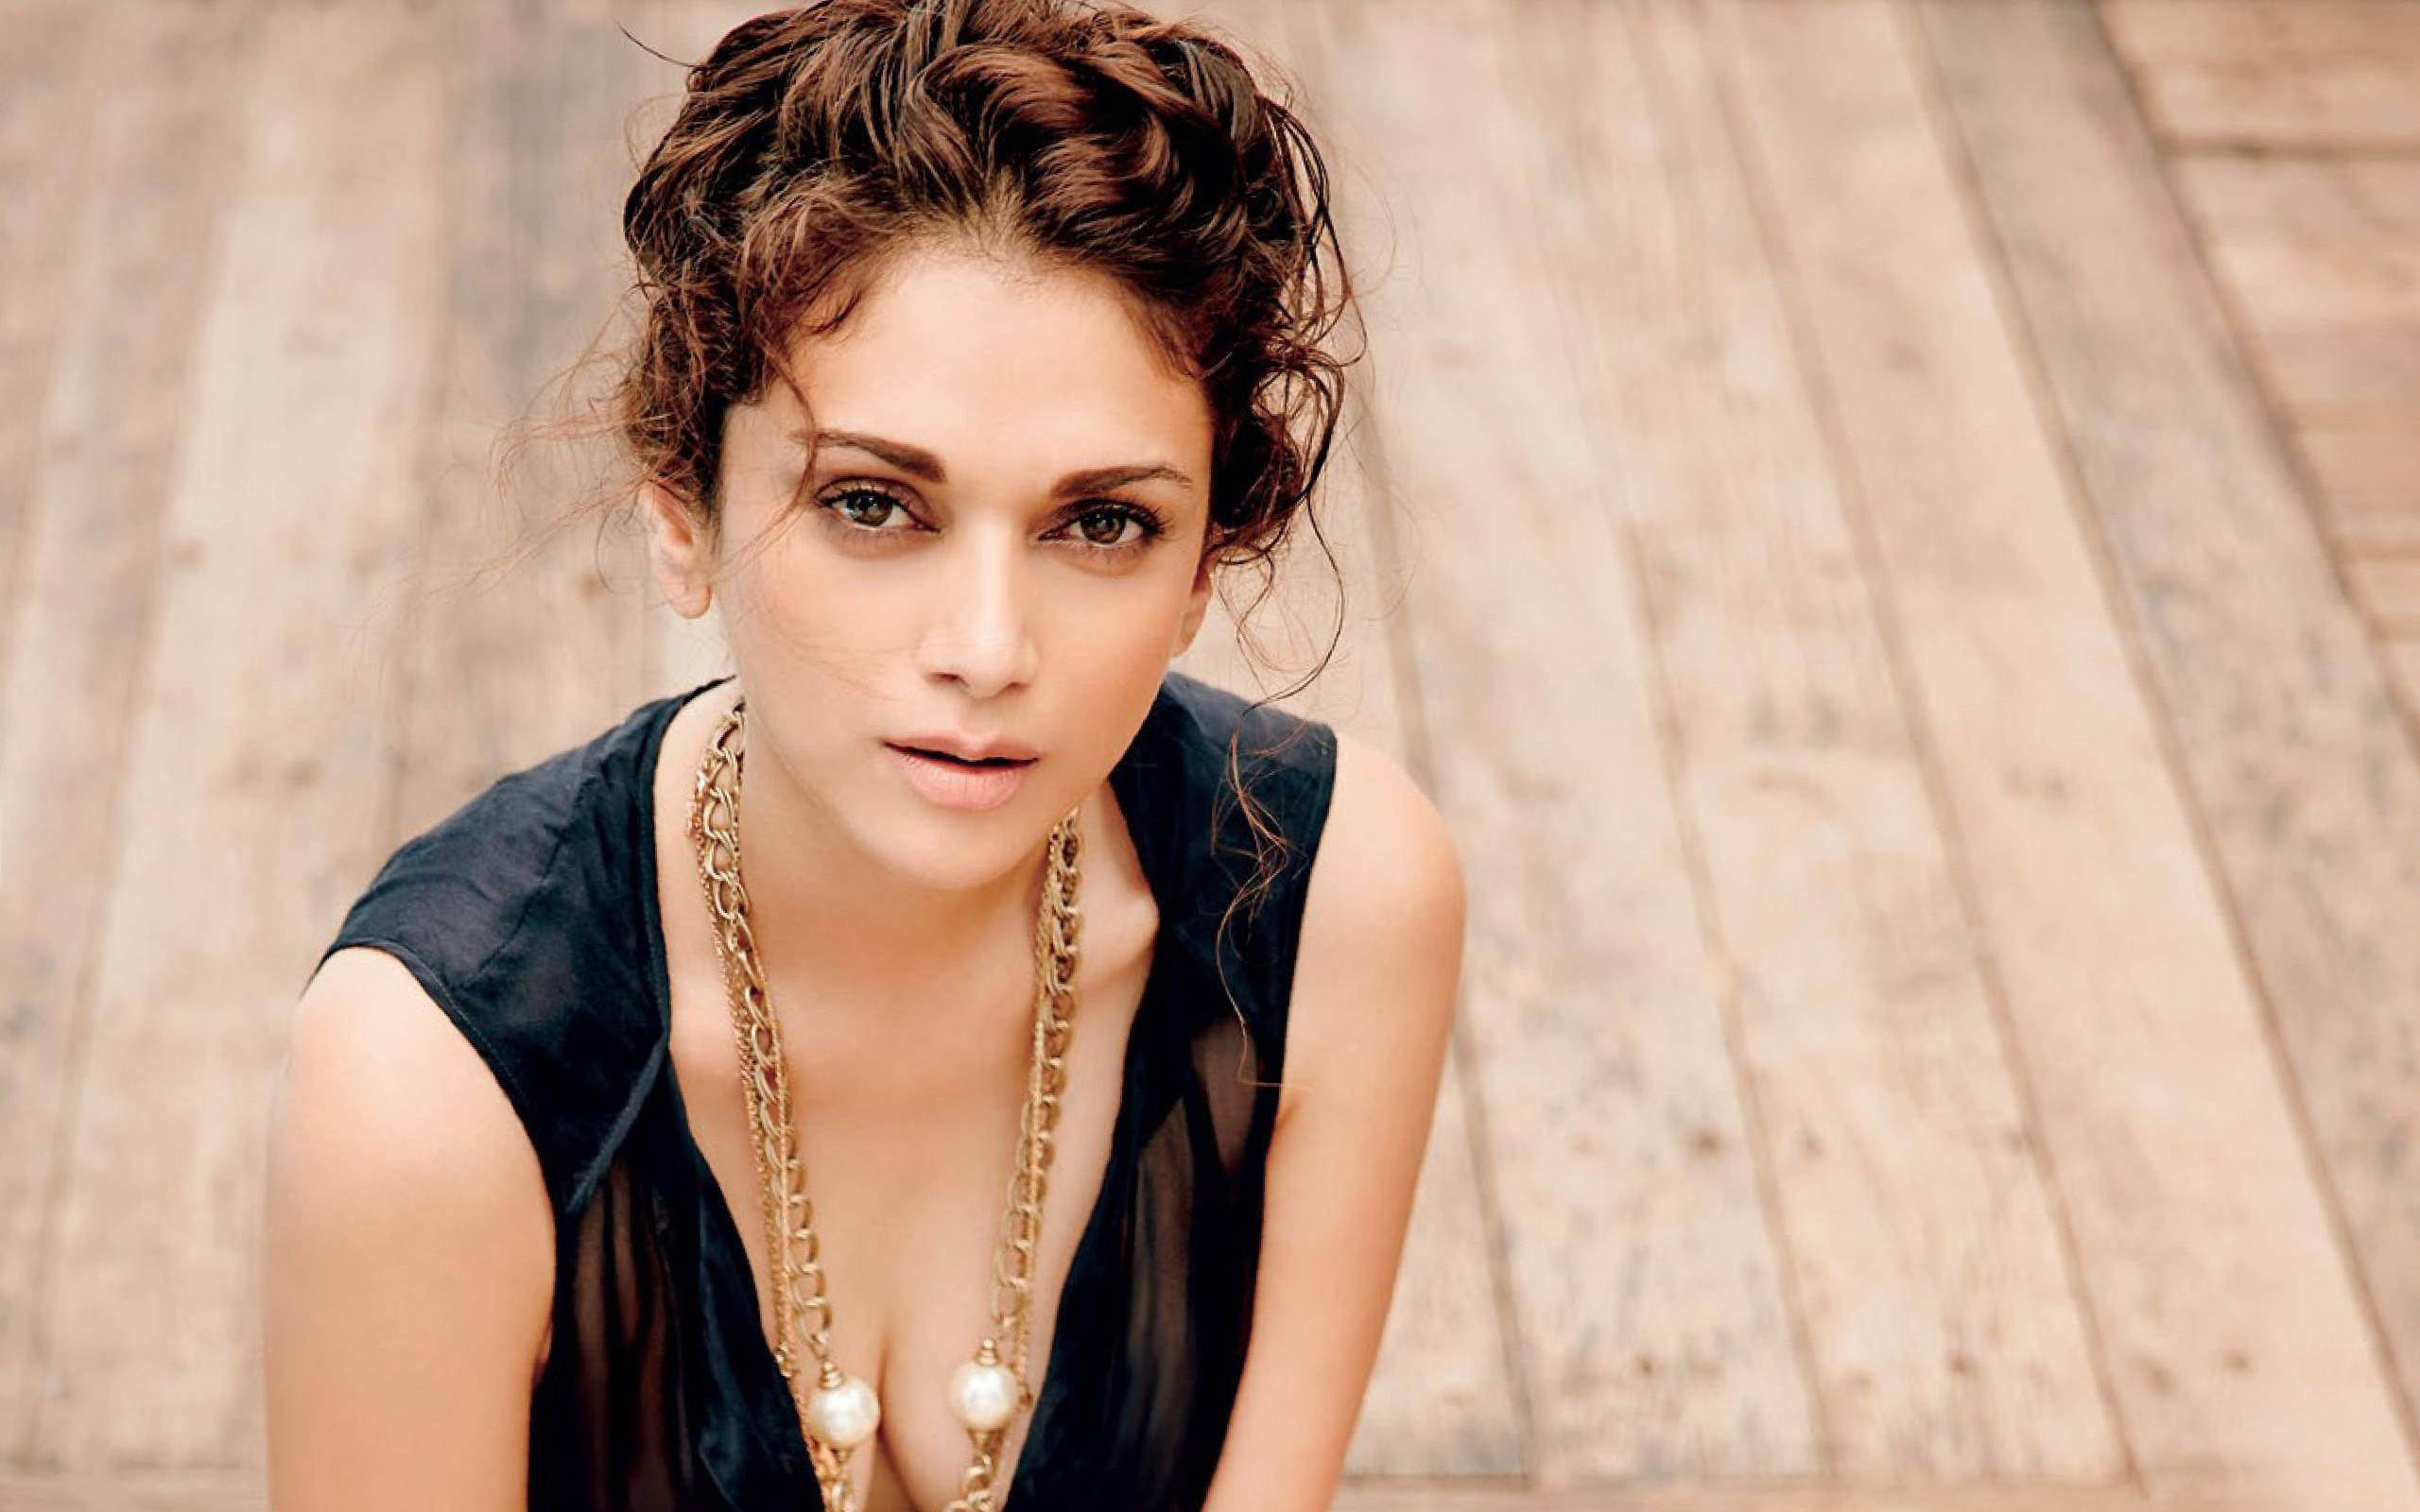 Aditi Rao Hydari Maxim Photoshoot   New HD Wallpapers 2560x1600